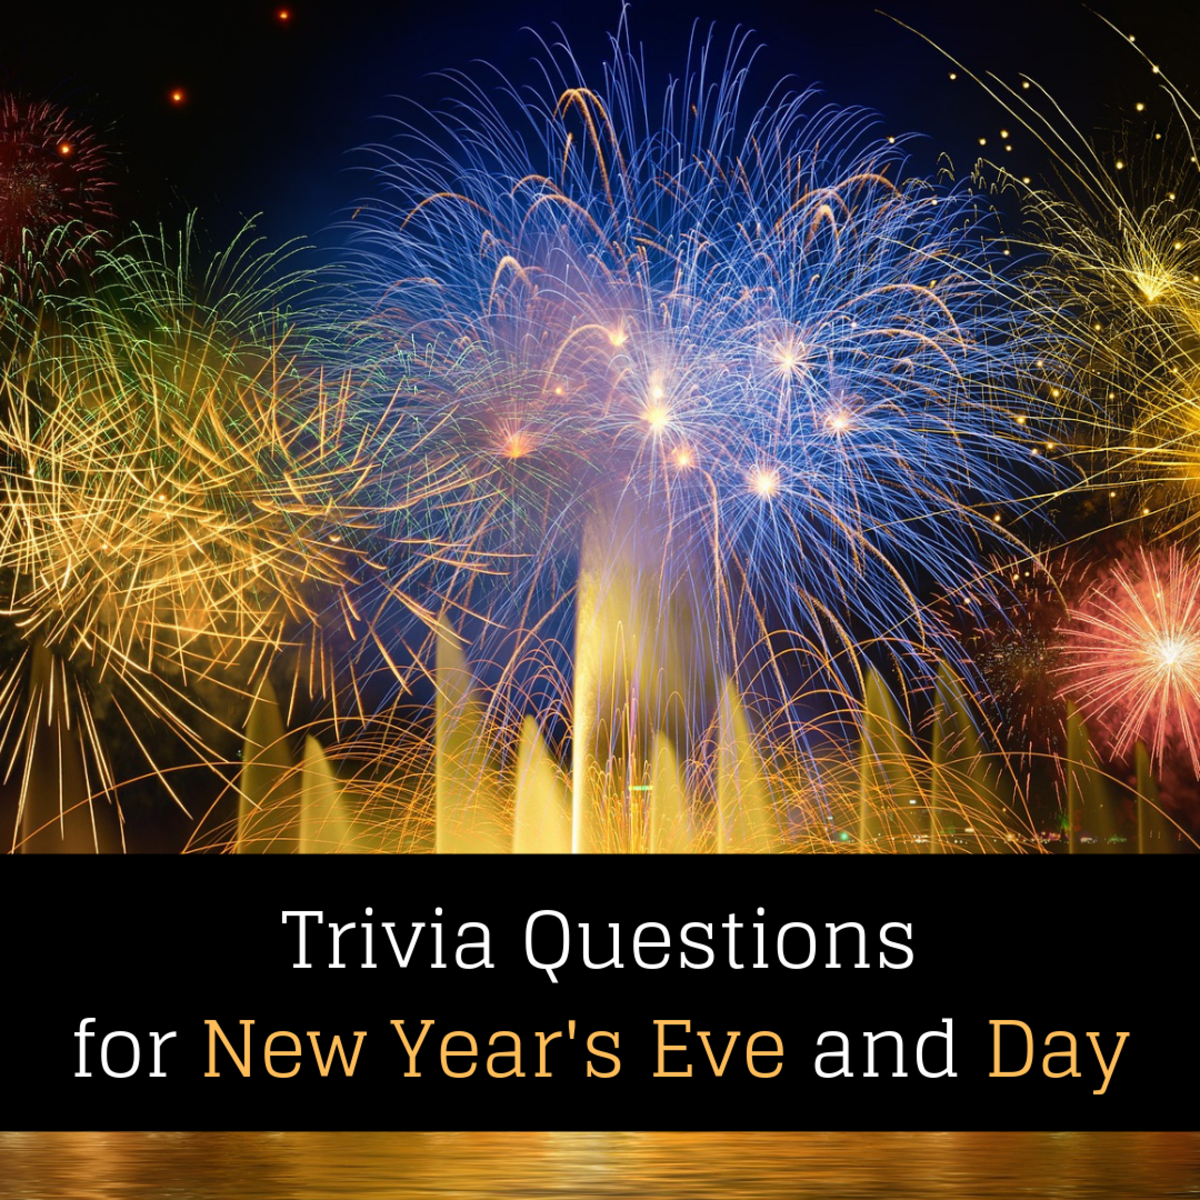 A New Year's Trivia Quiz (With Answers)